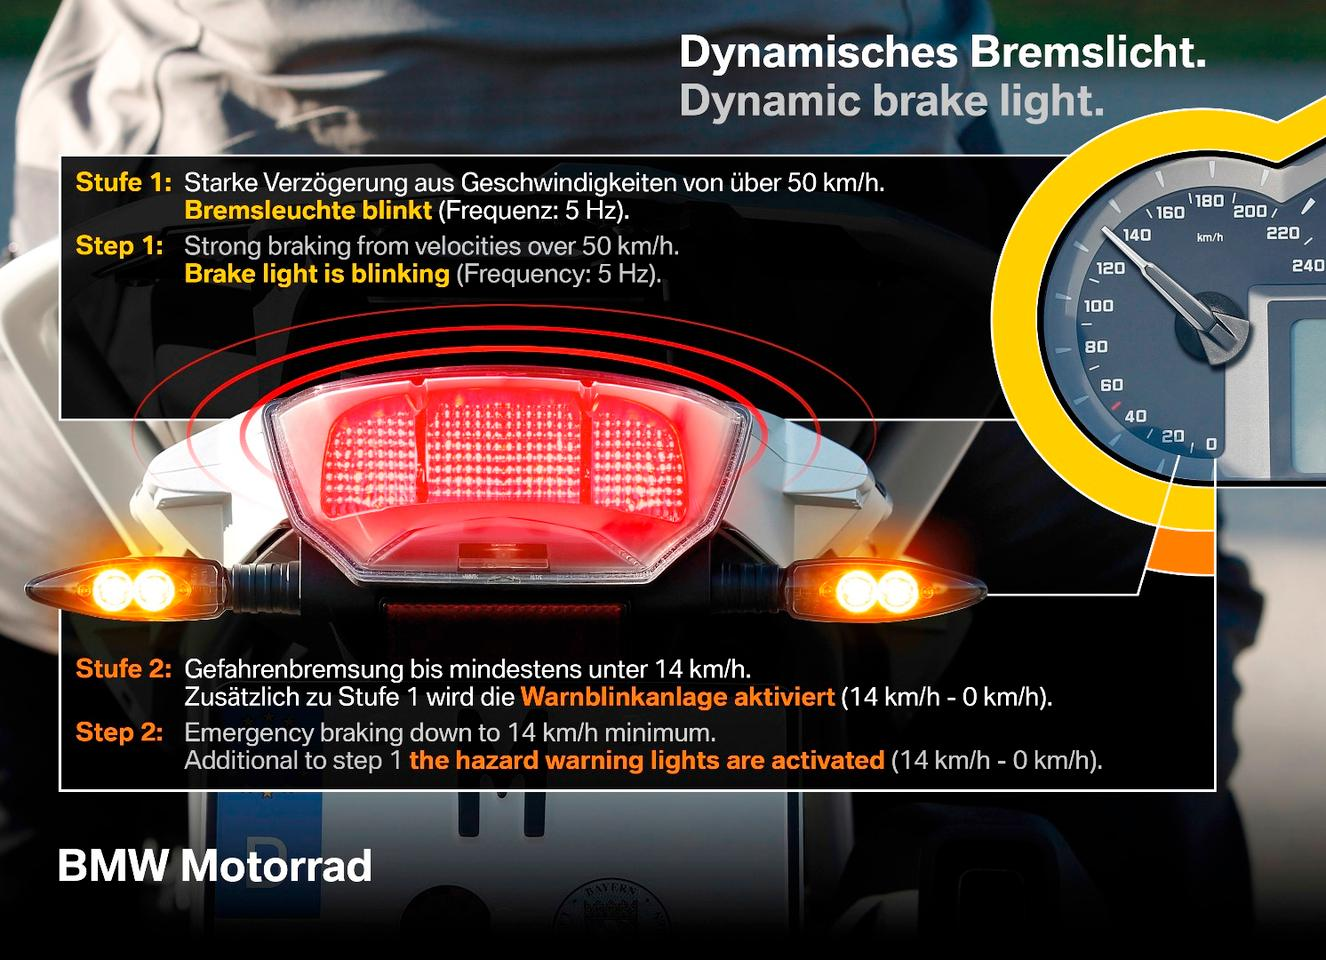 The dynamic brake light is designed to warn following traffic of the emergency braking action taking place up front